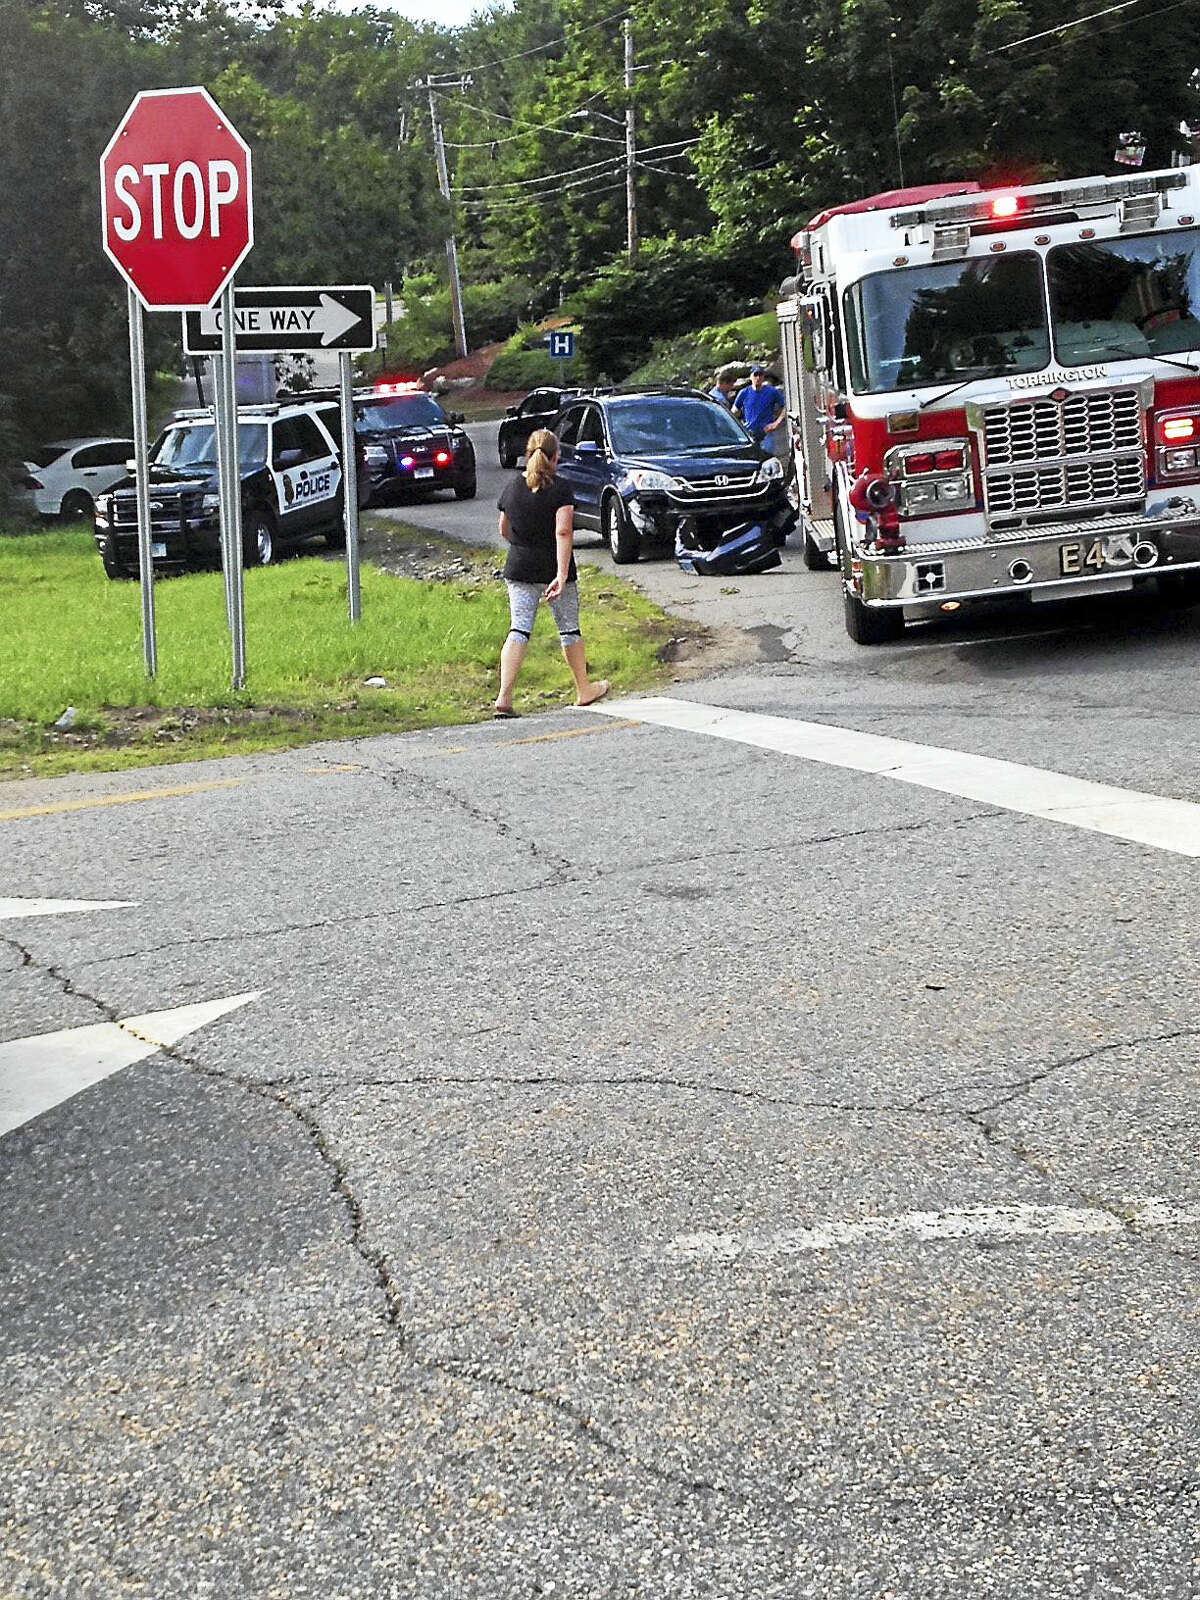 An SUV collided with a Torrington fire truck near the exit ramp of exit 43 on Route 8 Thursday afternoon. The fire truck was on its way to an accident on the exit ramp and allegedly backed into the SUV; the incident is under investigation, according to fire department members.